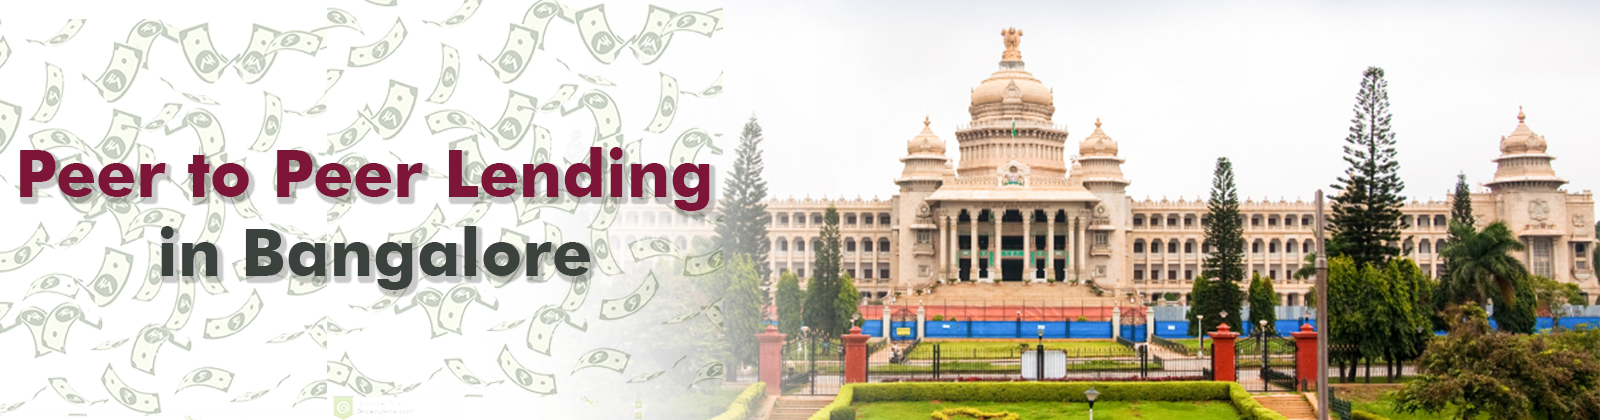 Peer to Peer Lending in Bangalore